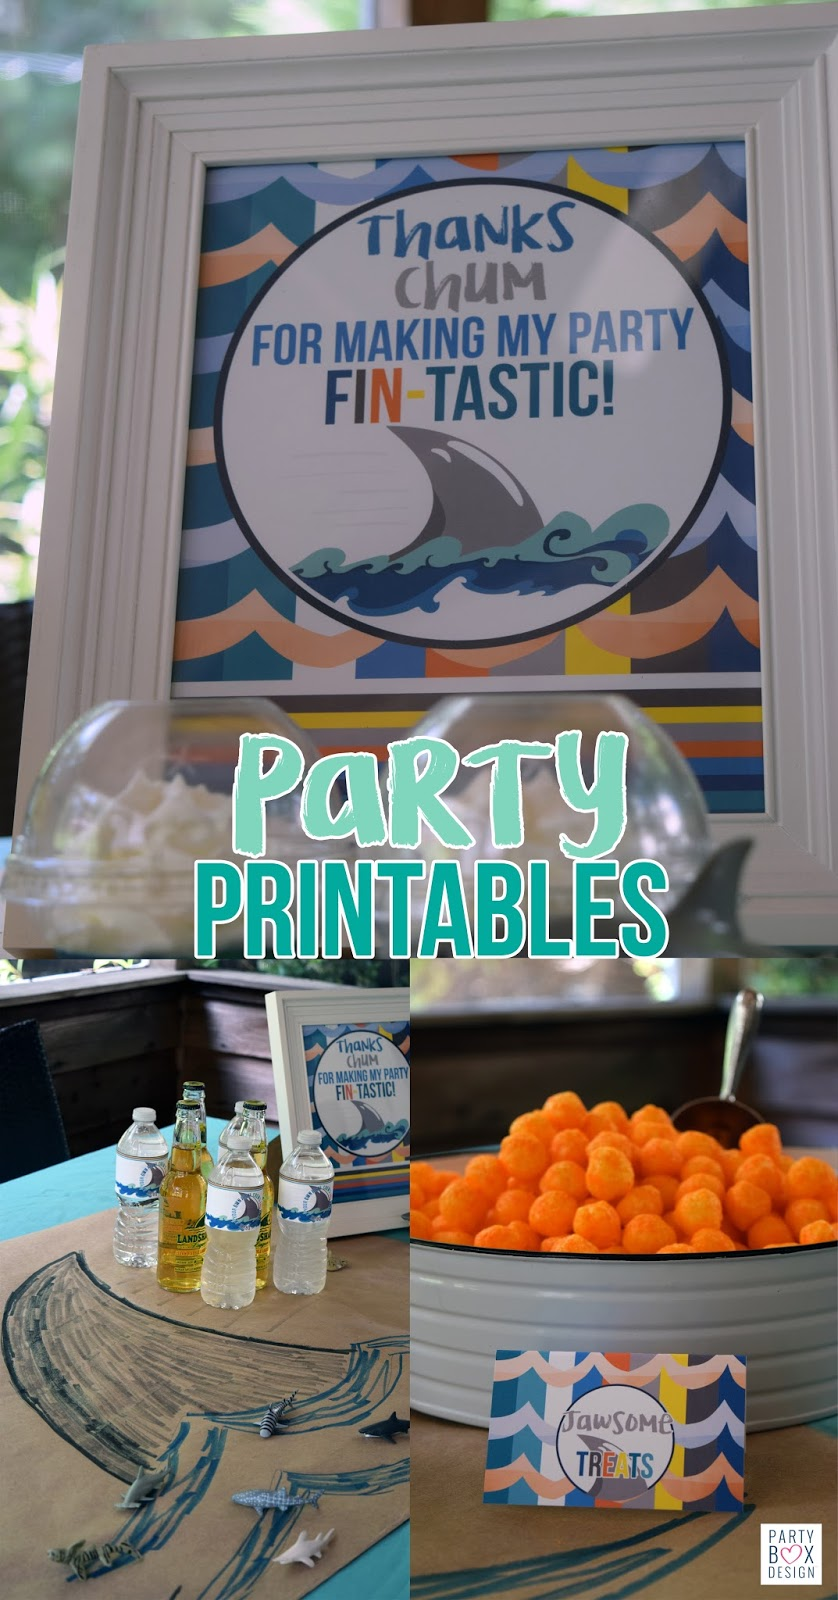 http://www.partyboxdesign.com/category_145/Printables.htm